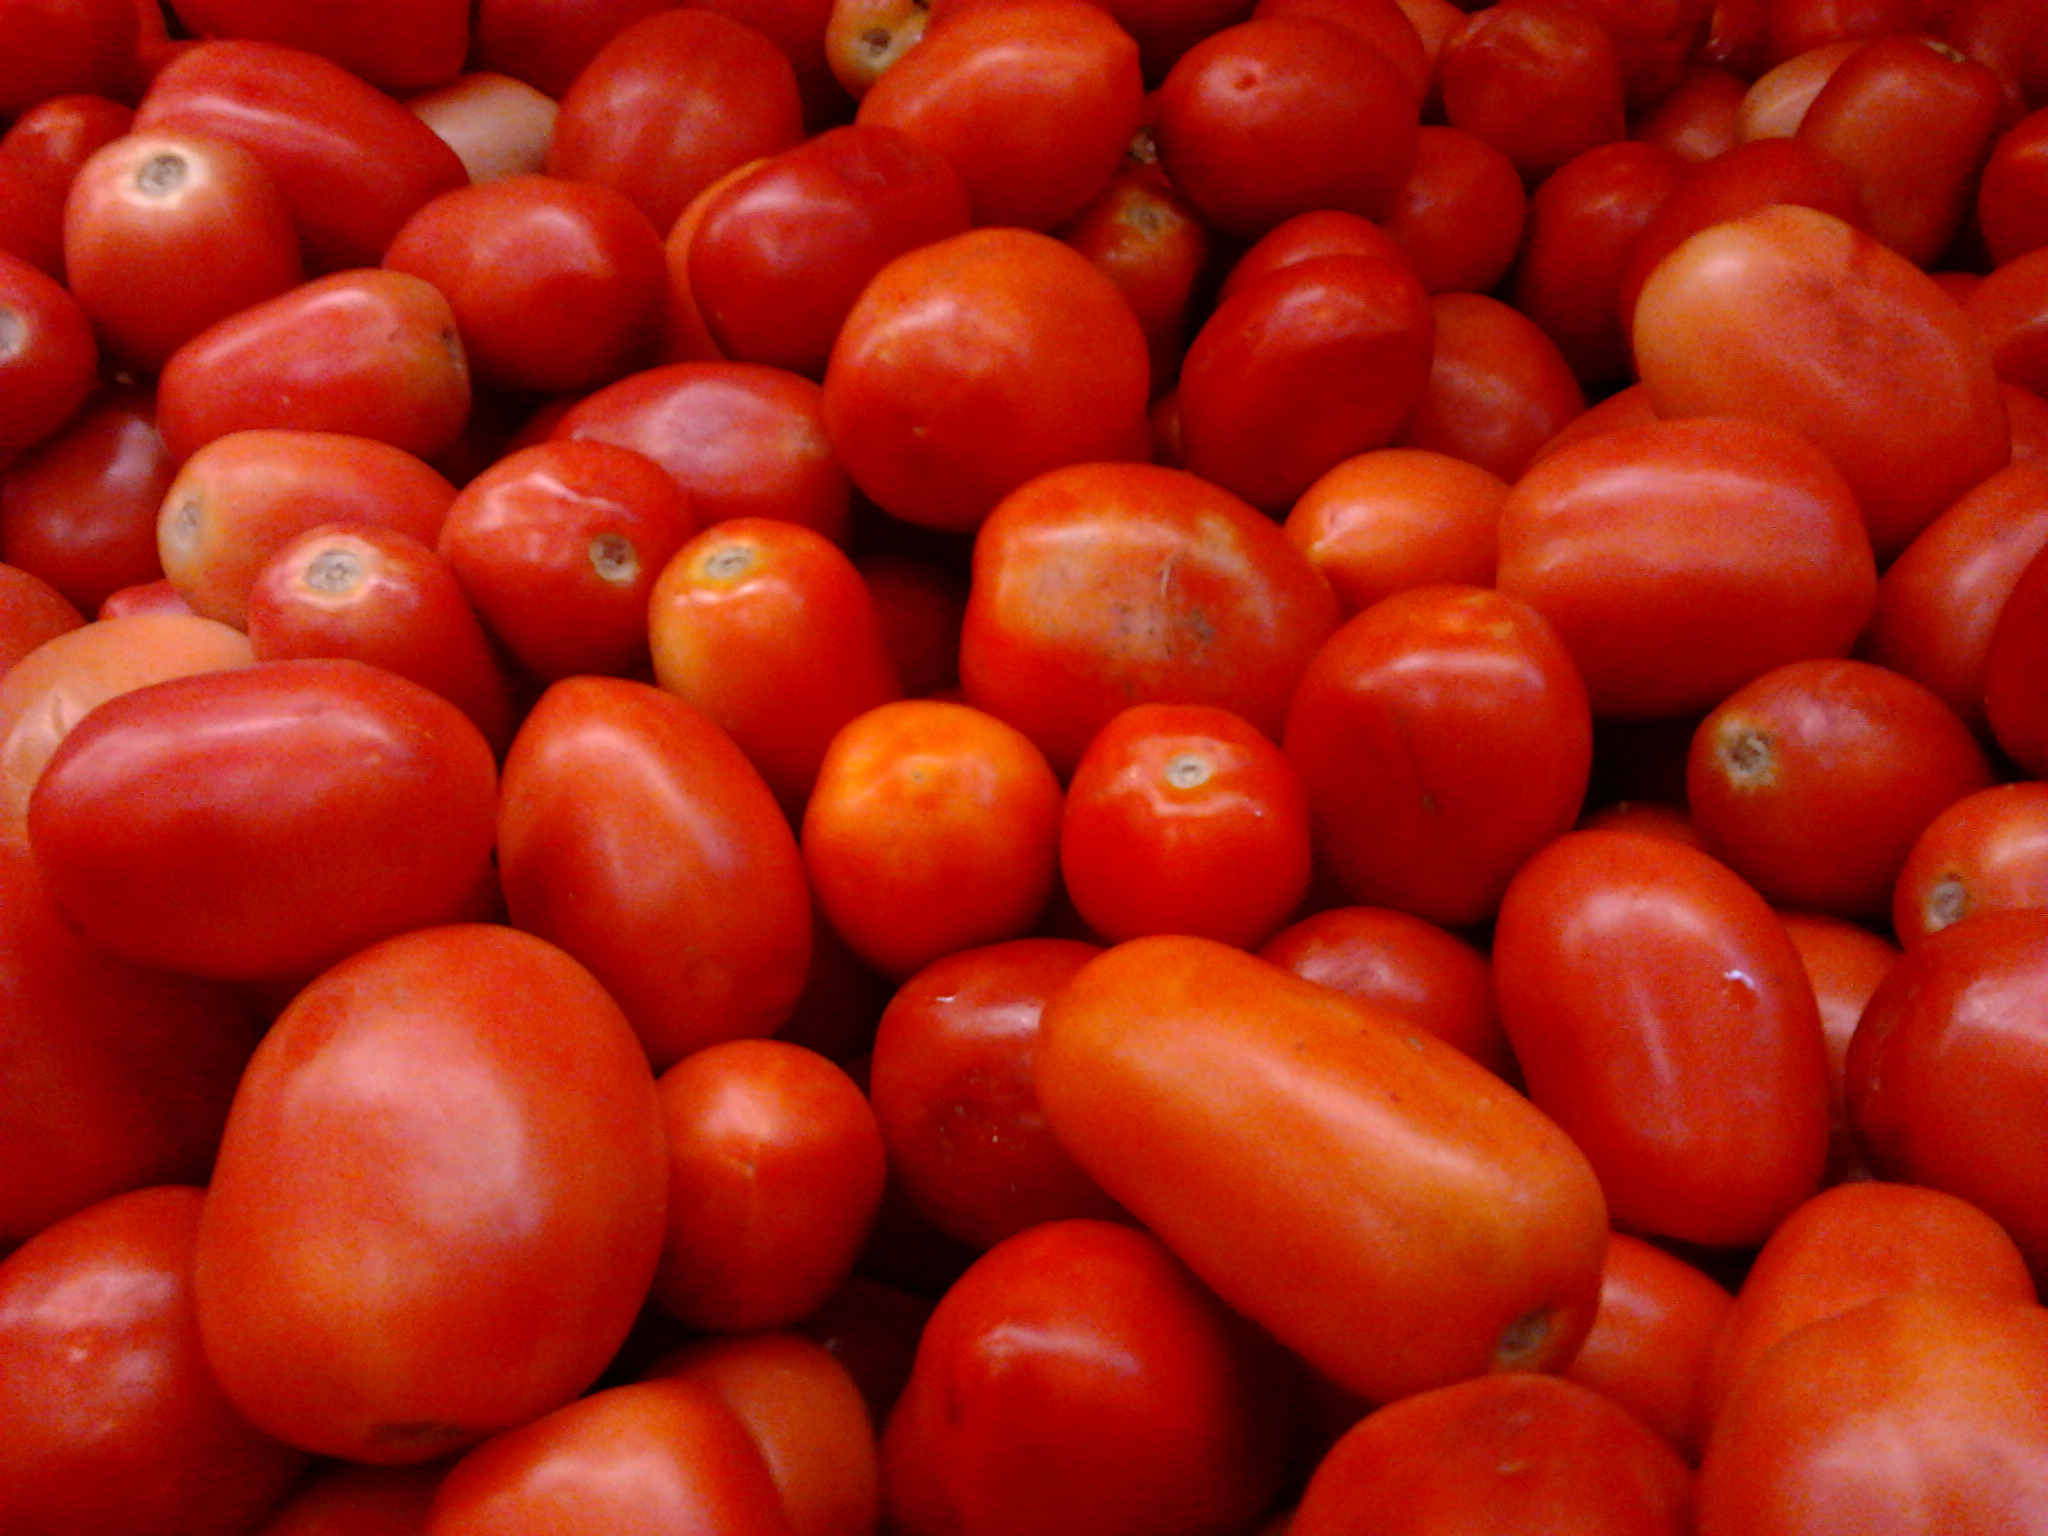 File:Roma or Bangalore Tomatoes (Indian hybrid).jpg